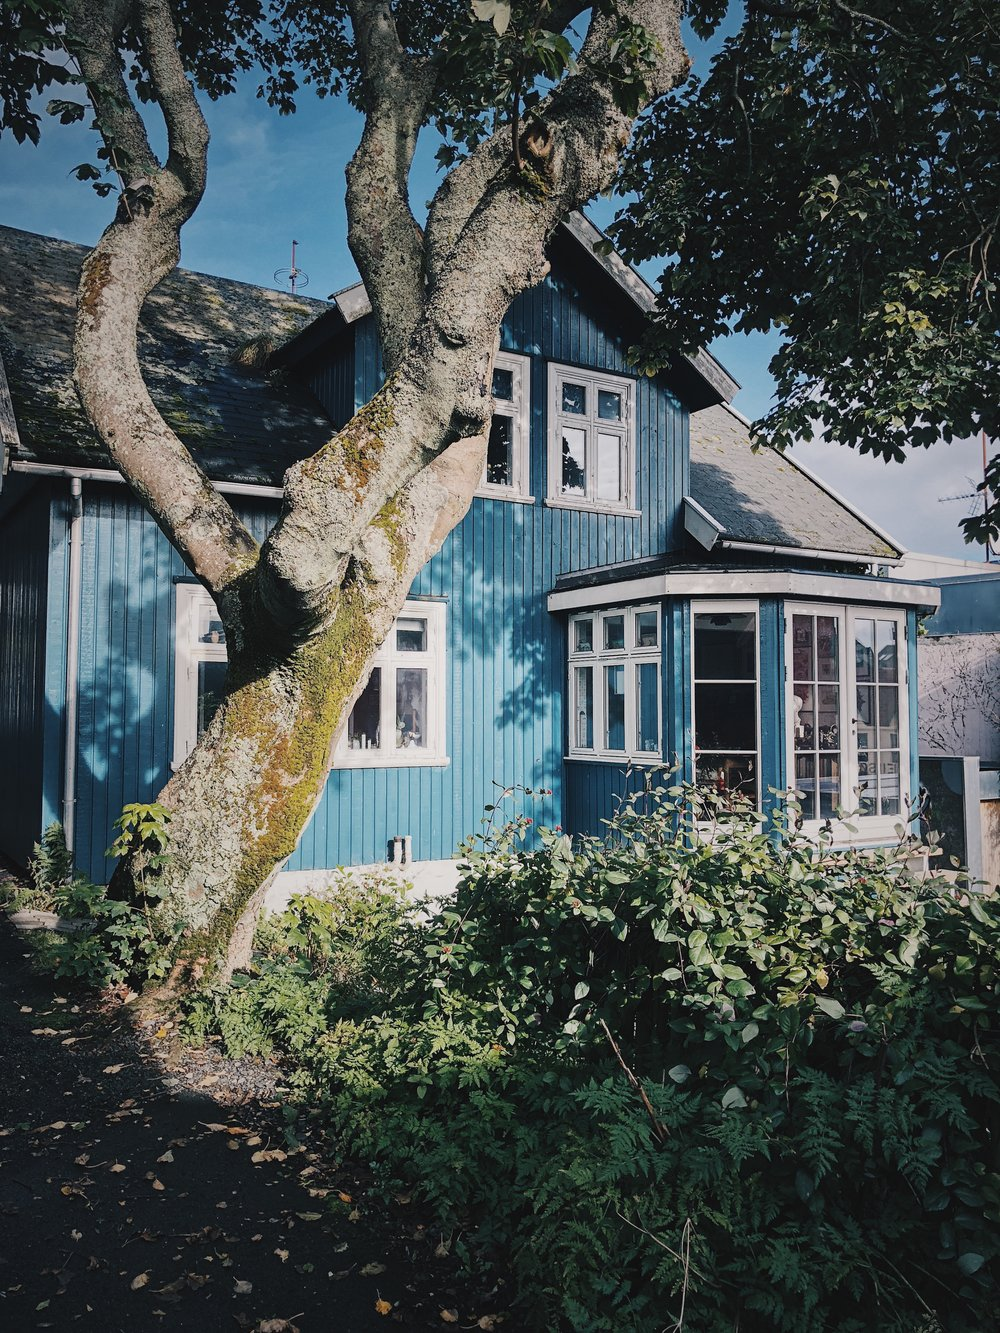 Typical and beautiful Faroese houses.